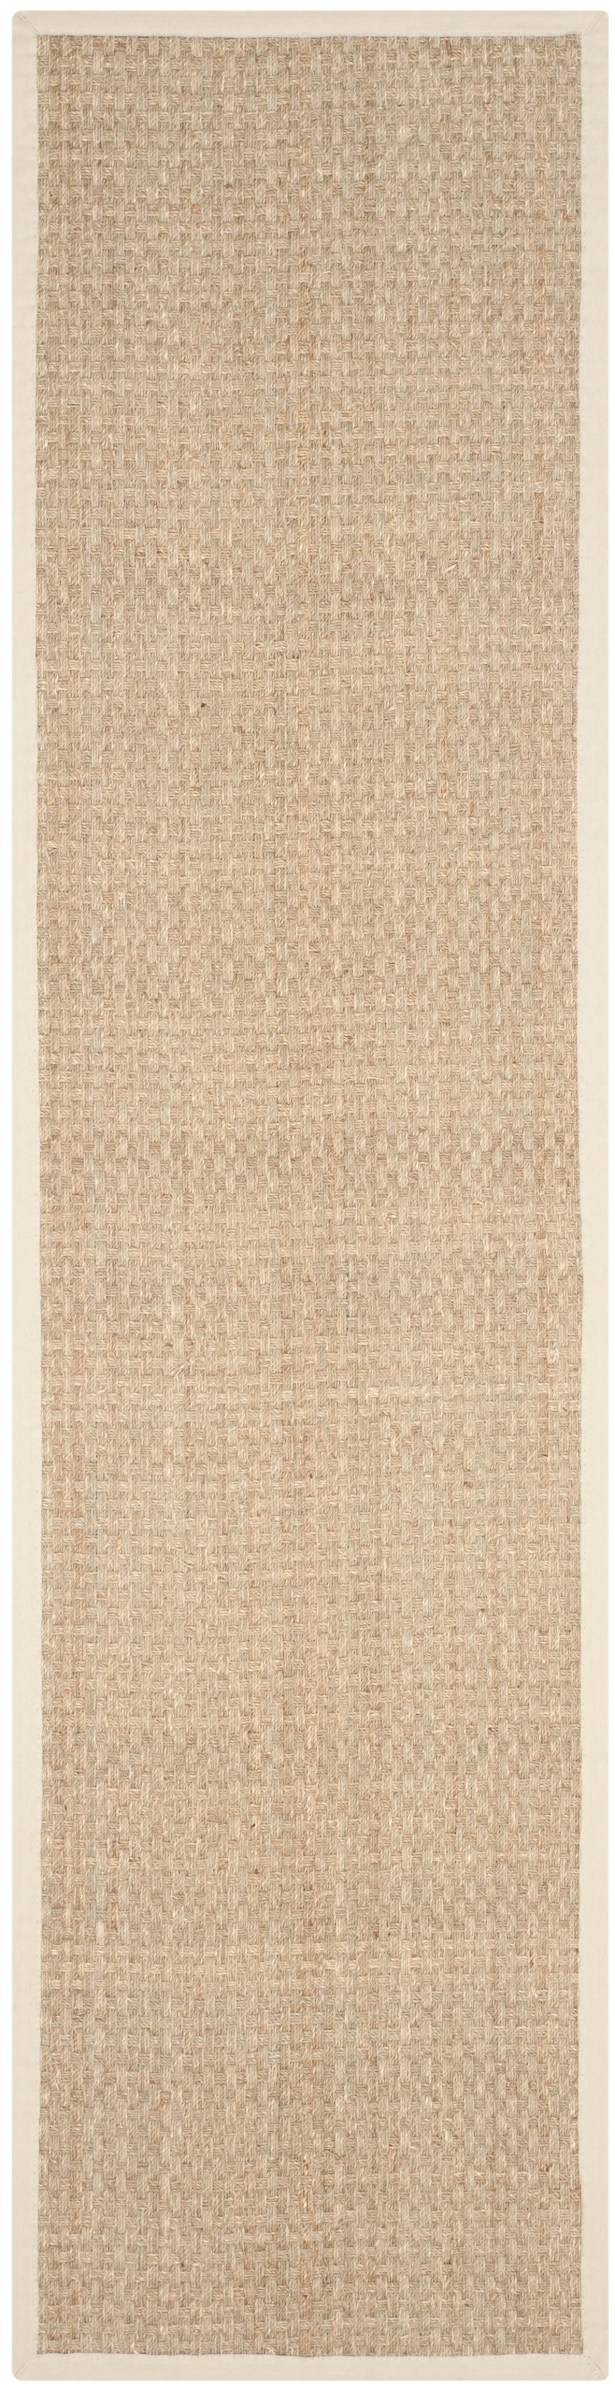 Catherine Natural/Ivory Area Rug Rug Size: Runner 2'6